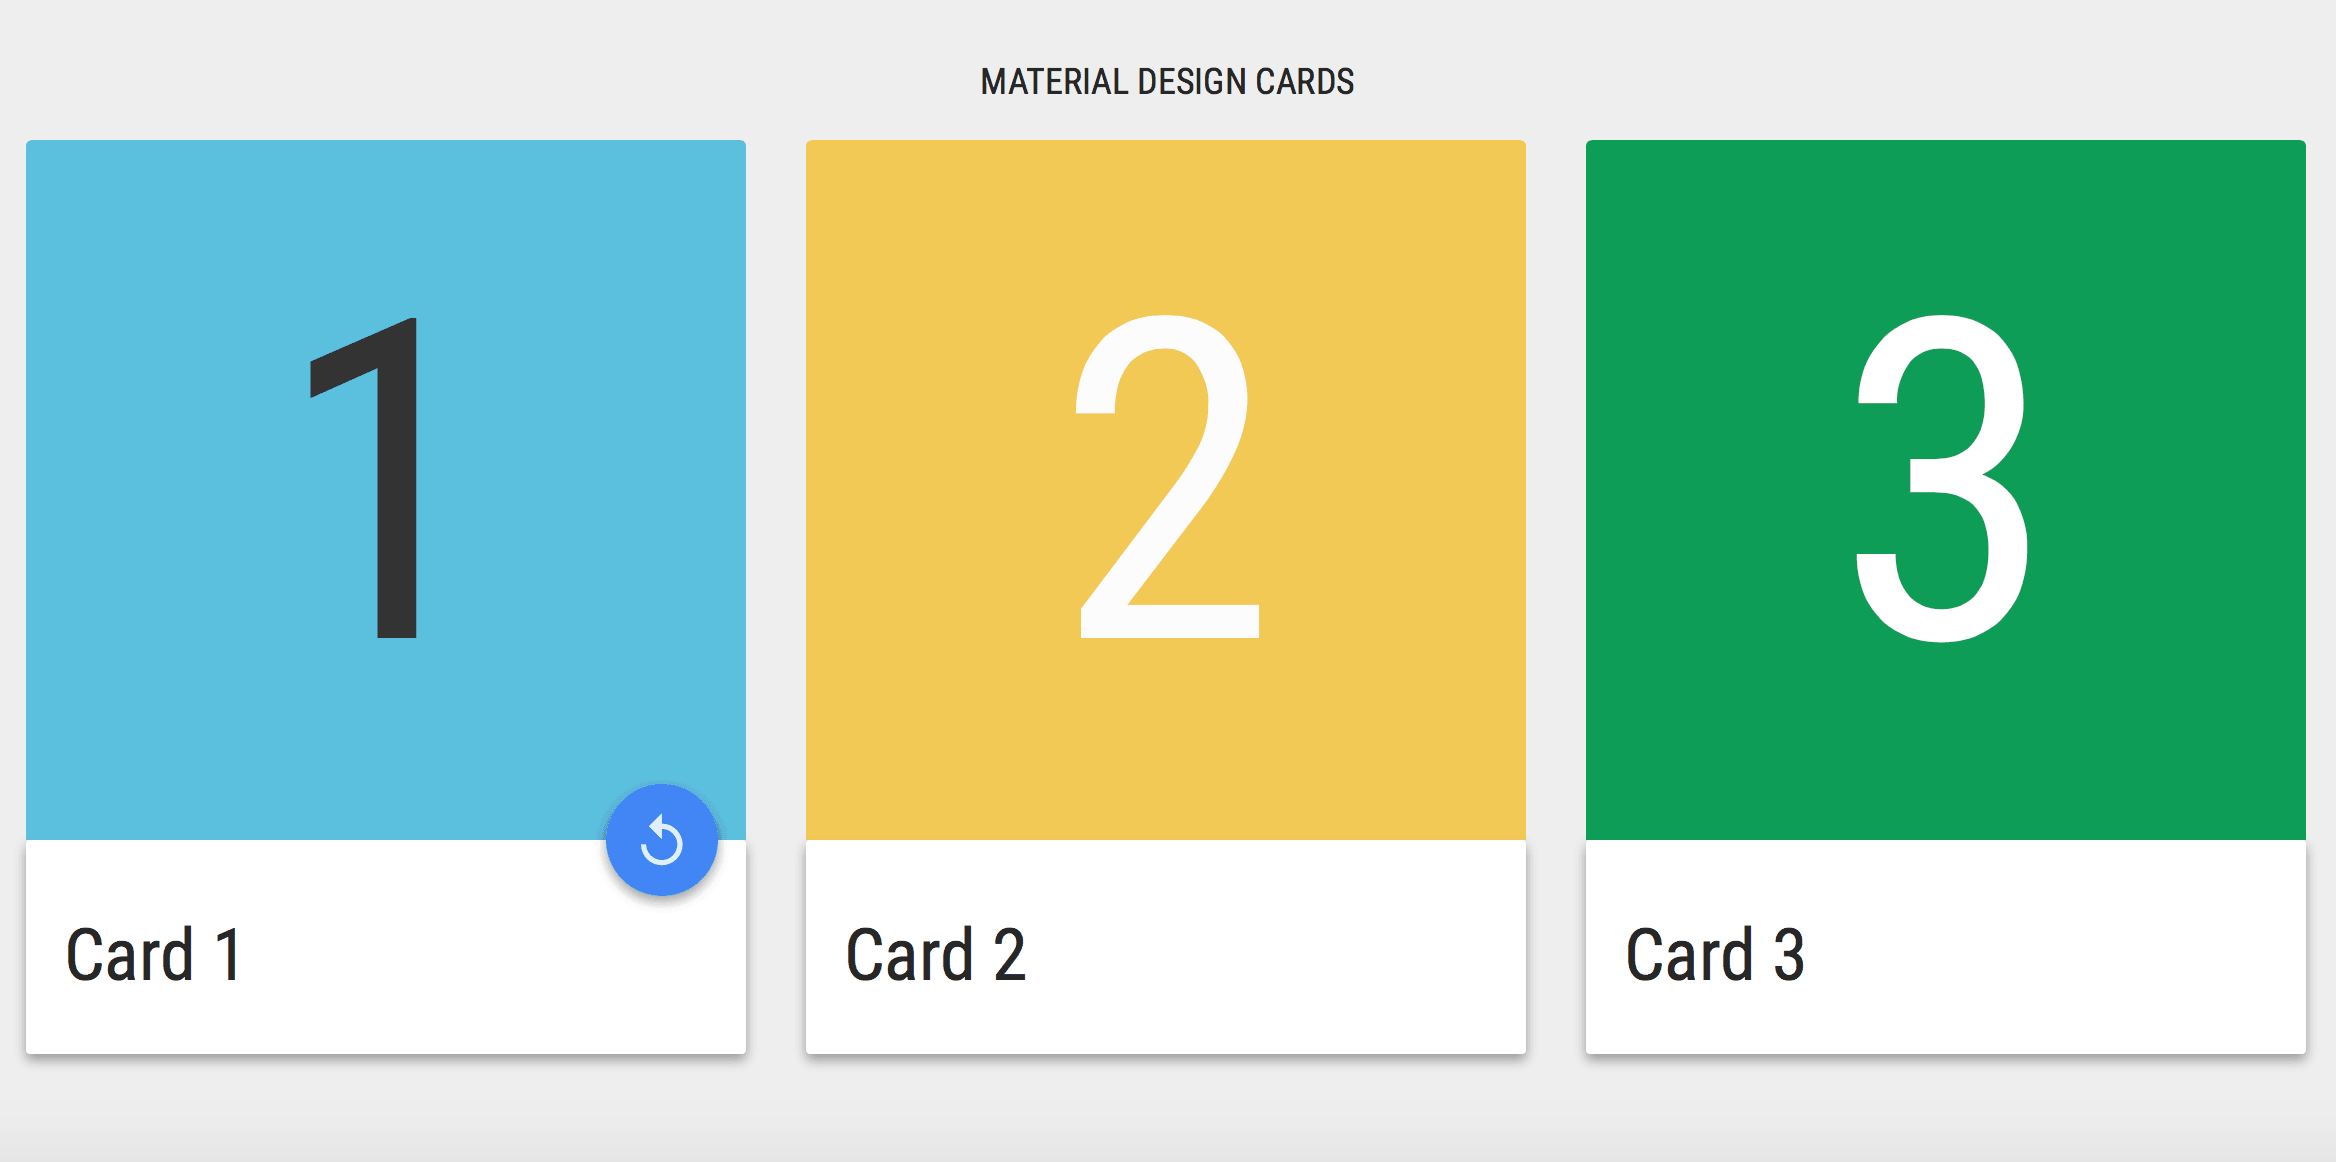 10 Material Design cards for web in CSS & HTML